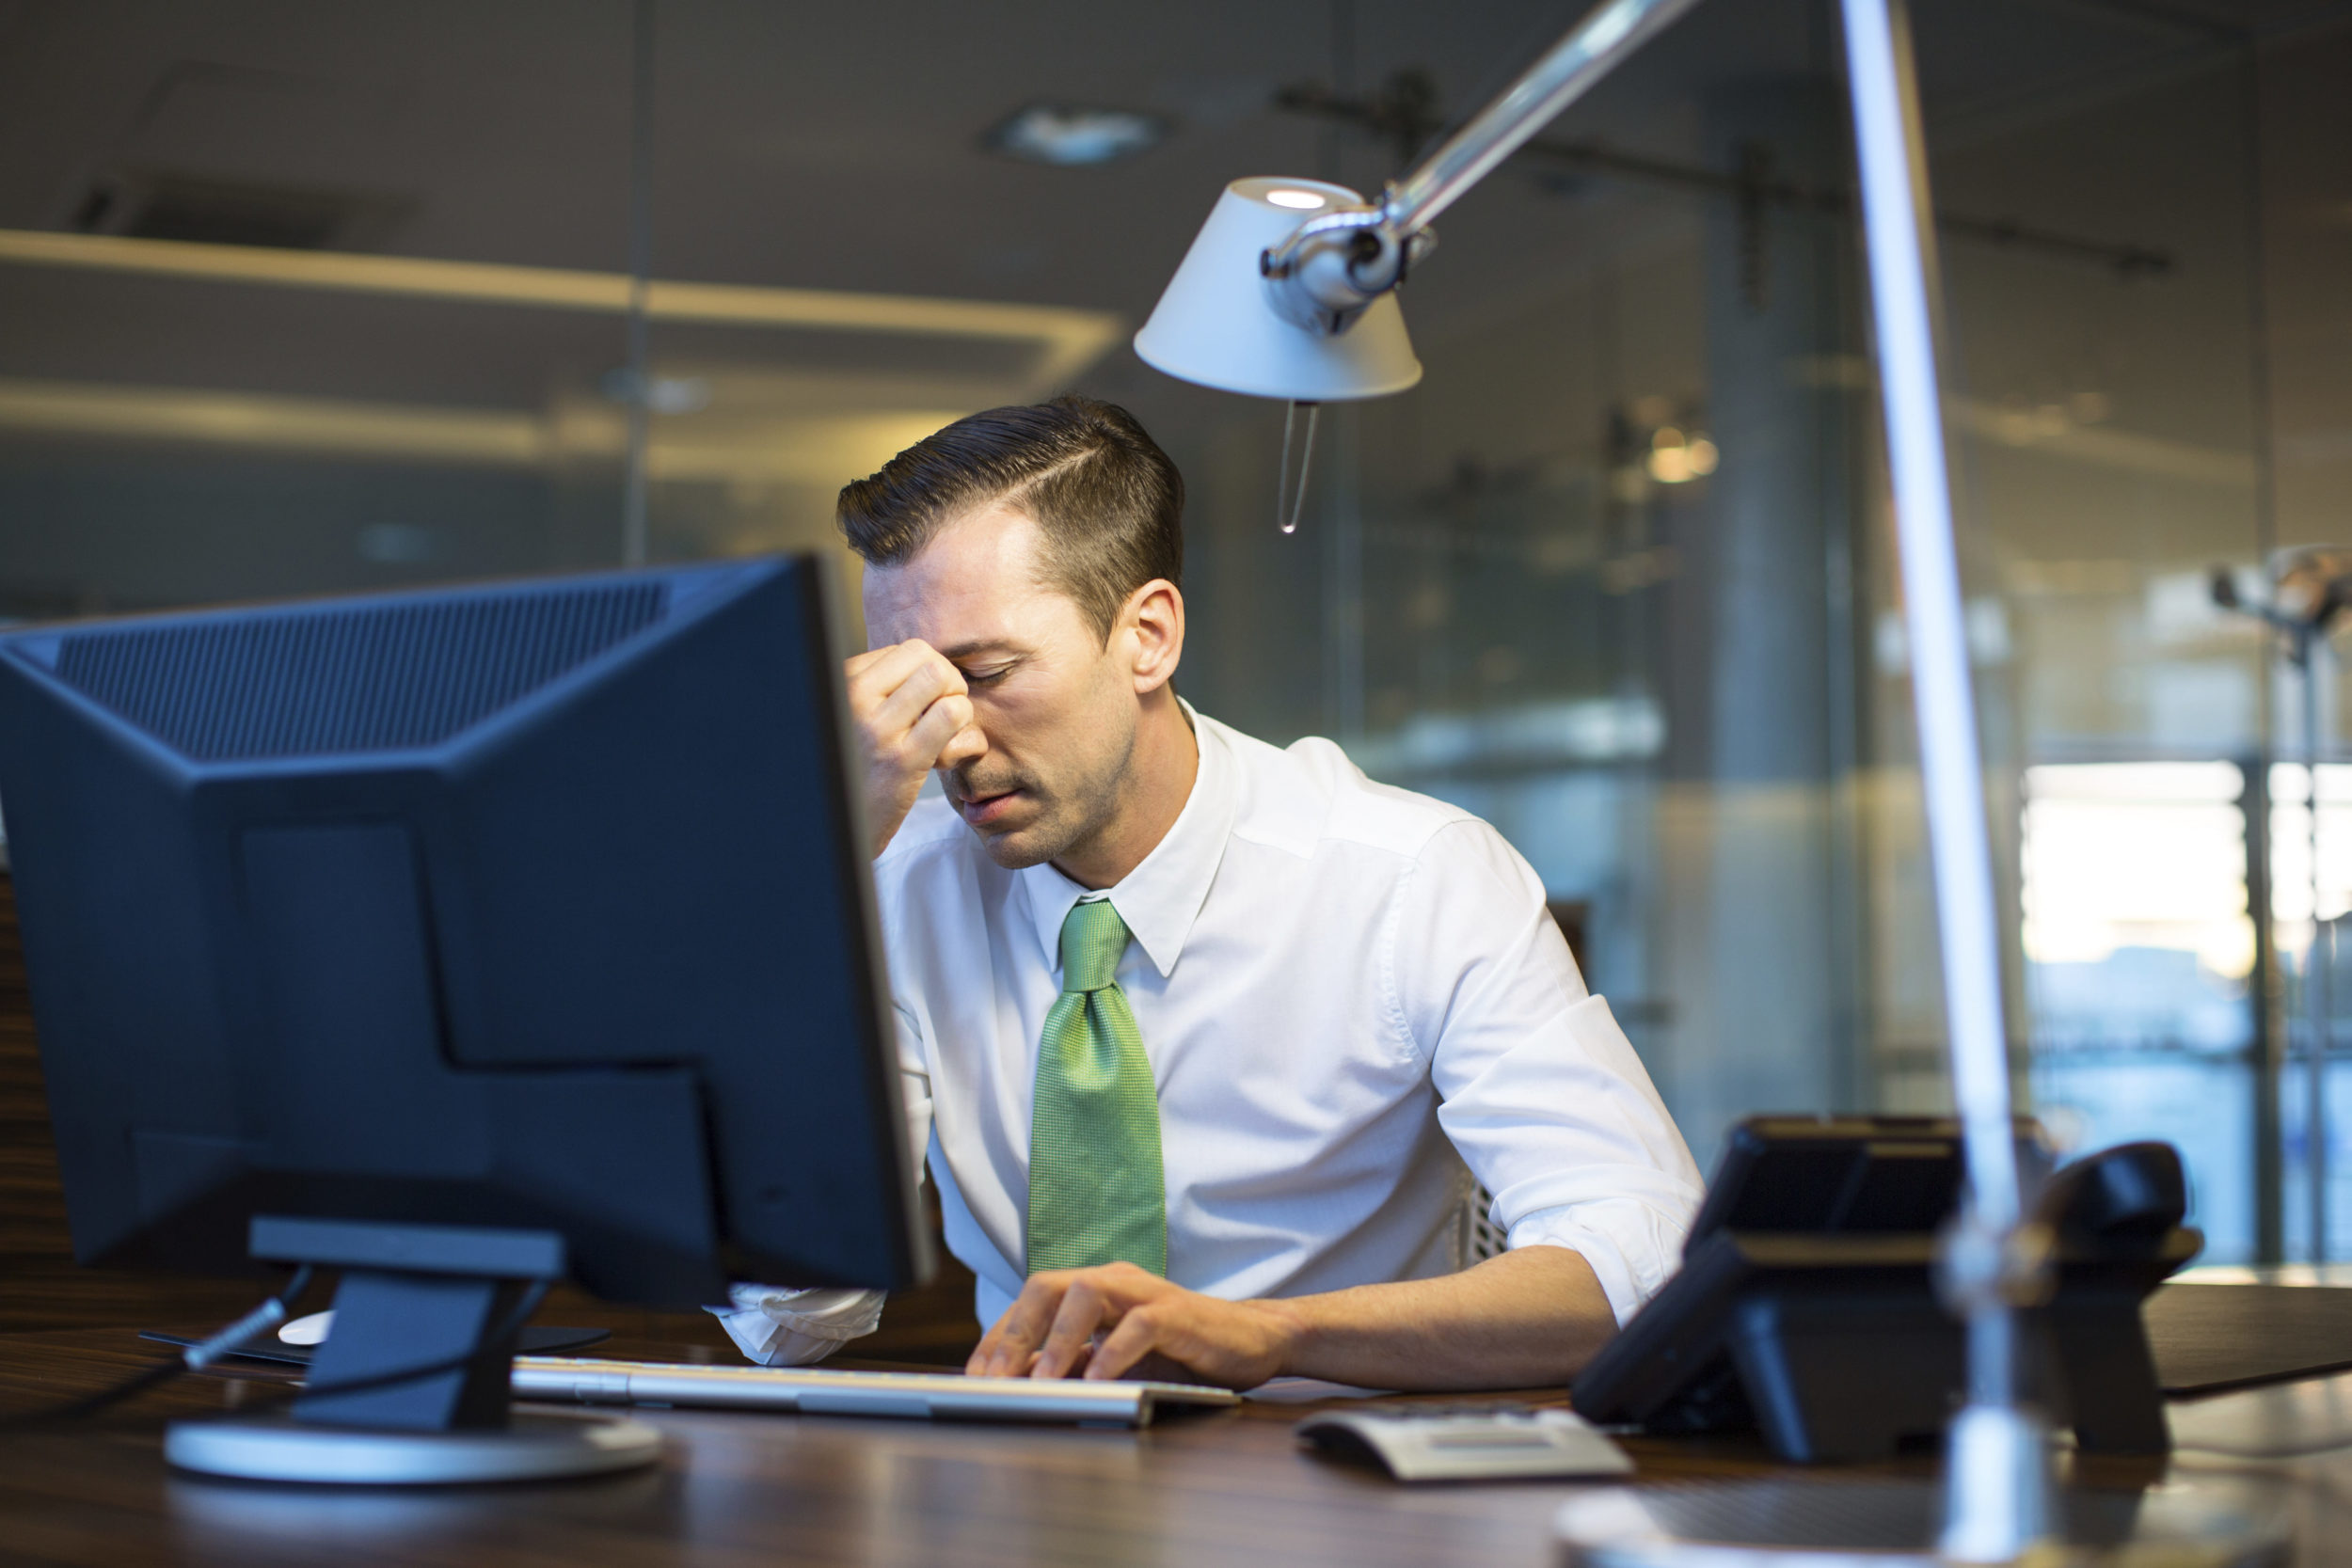 Business man at desk with his head in his hand